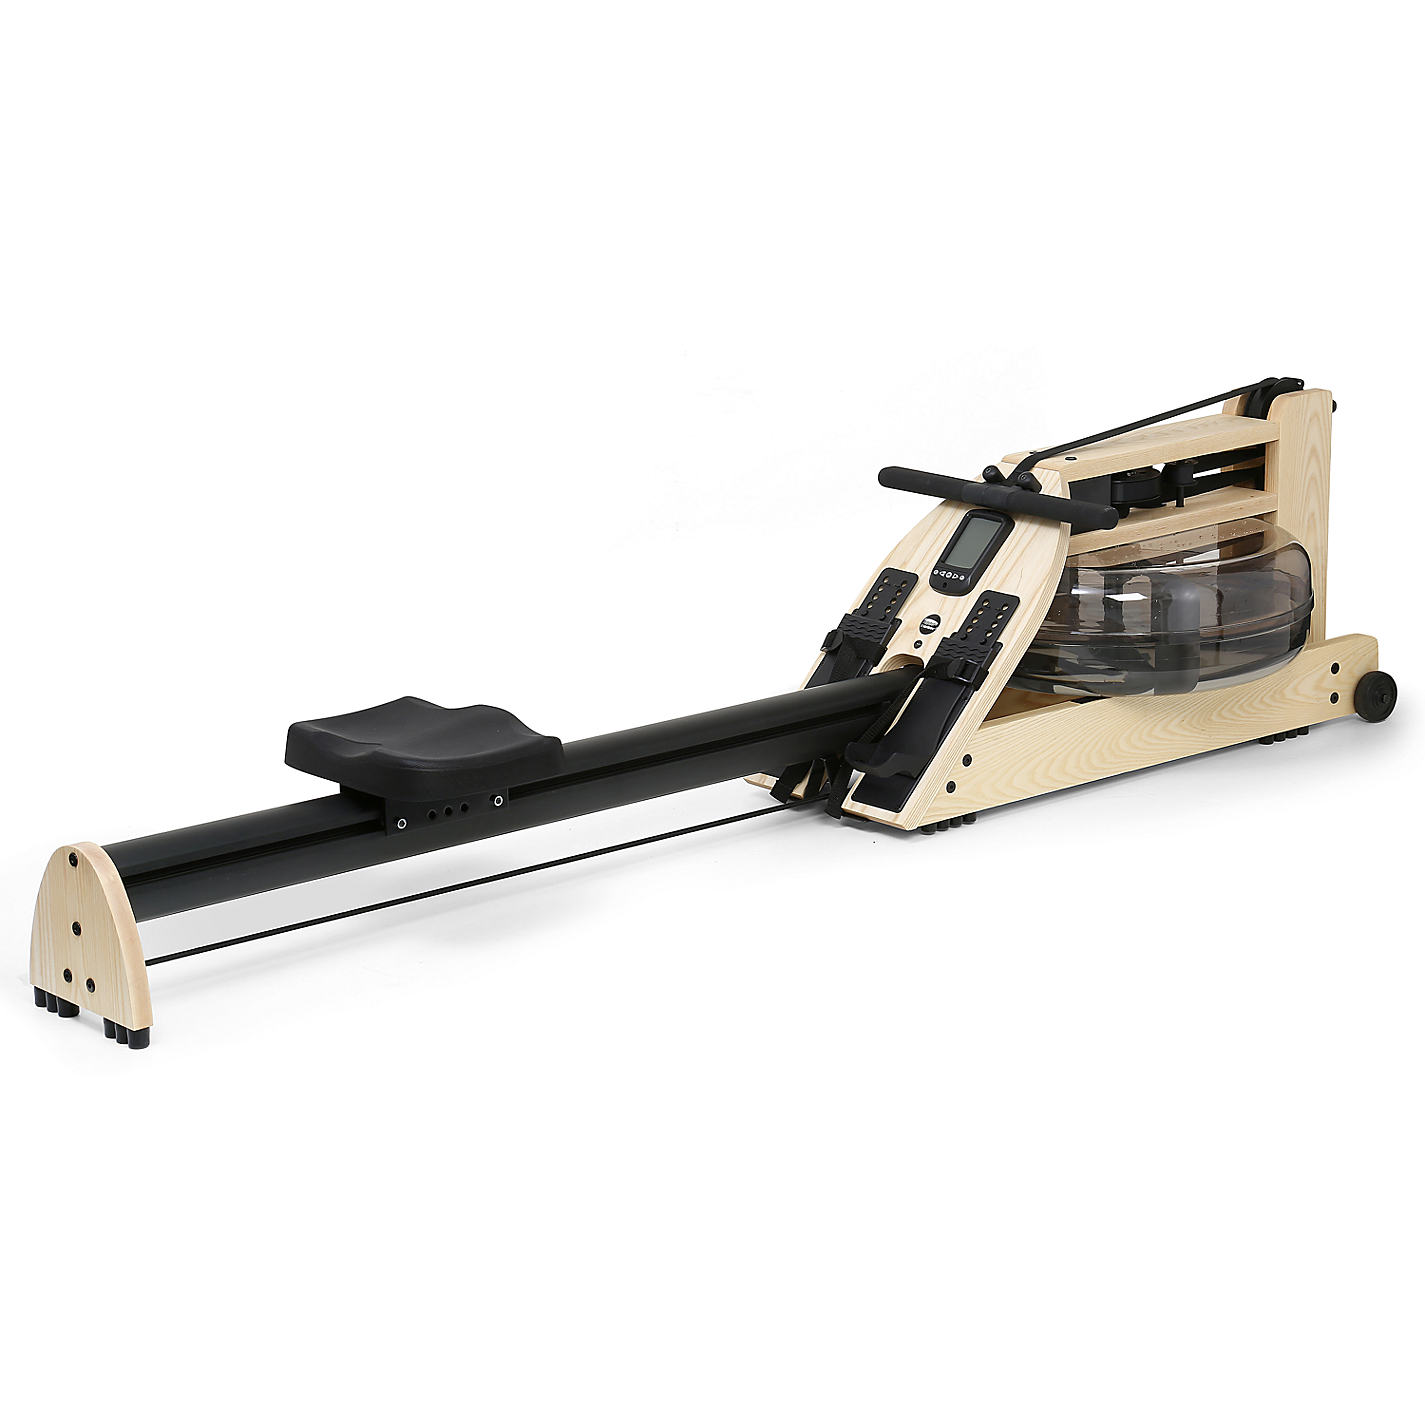 waterrower a1 rameur d 39 eau. Black Bedroom Furniture Sets. Home Design Ideas